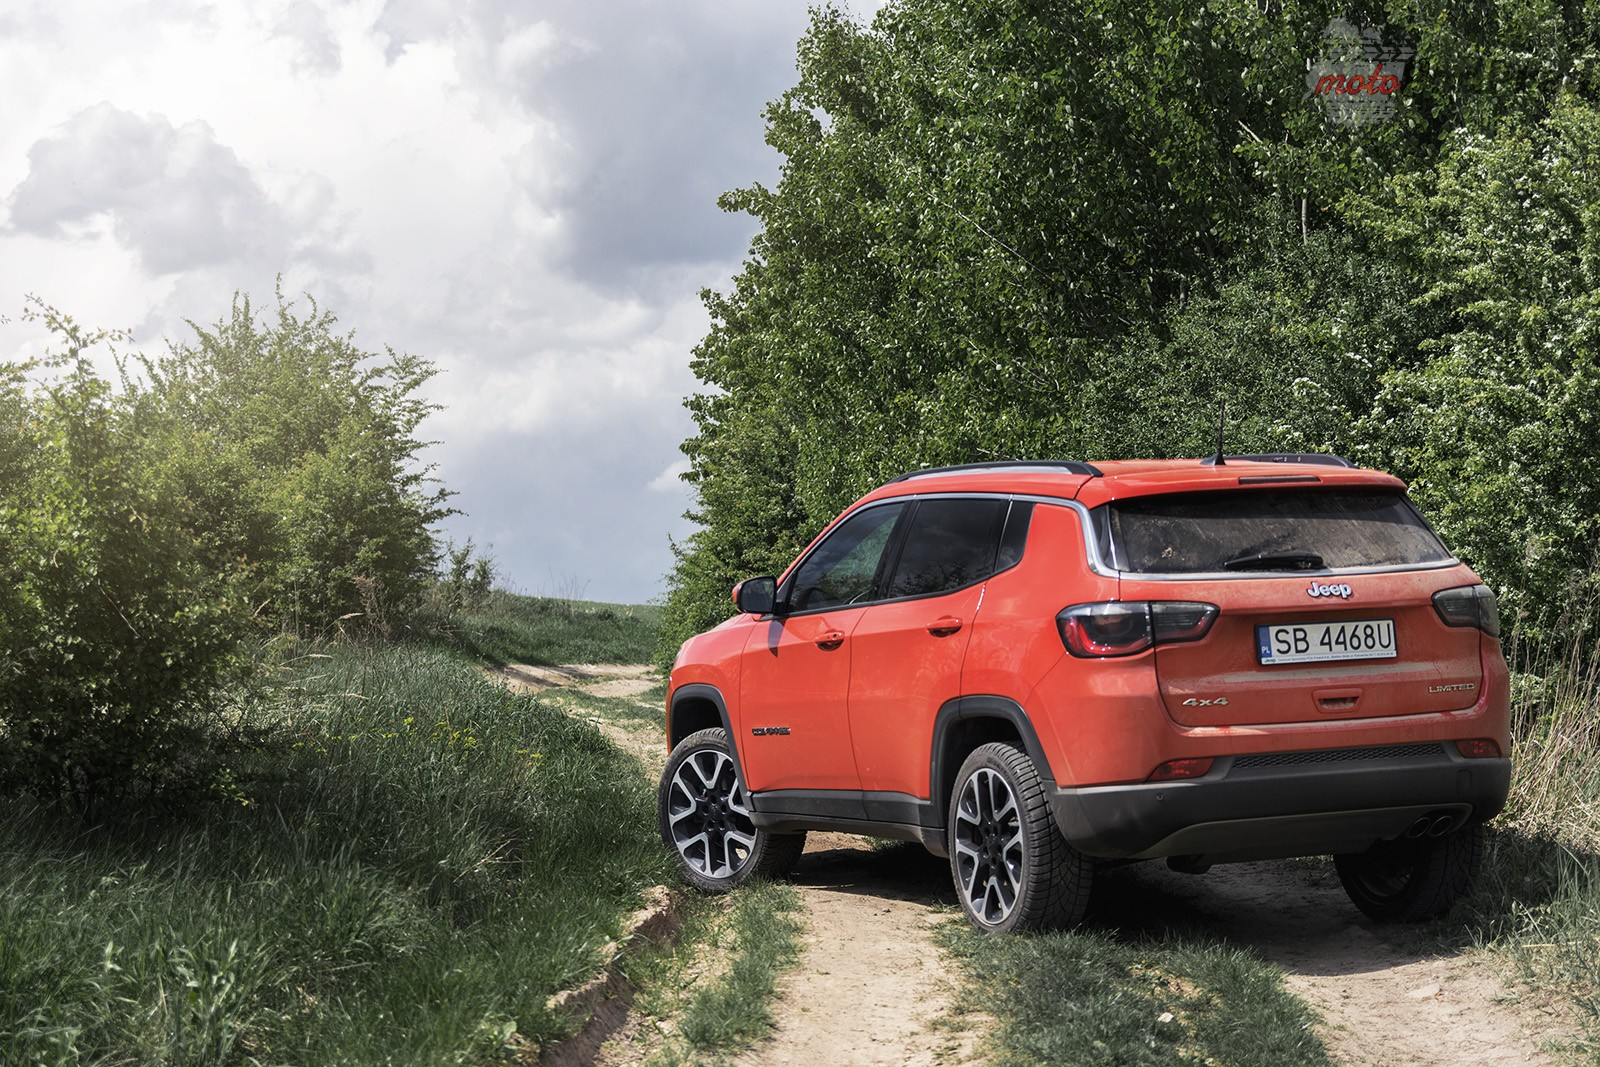 Jeep Compass 31 Test: Jeep Compass 2.0 140 KM   kierunek Europa